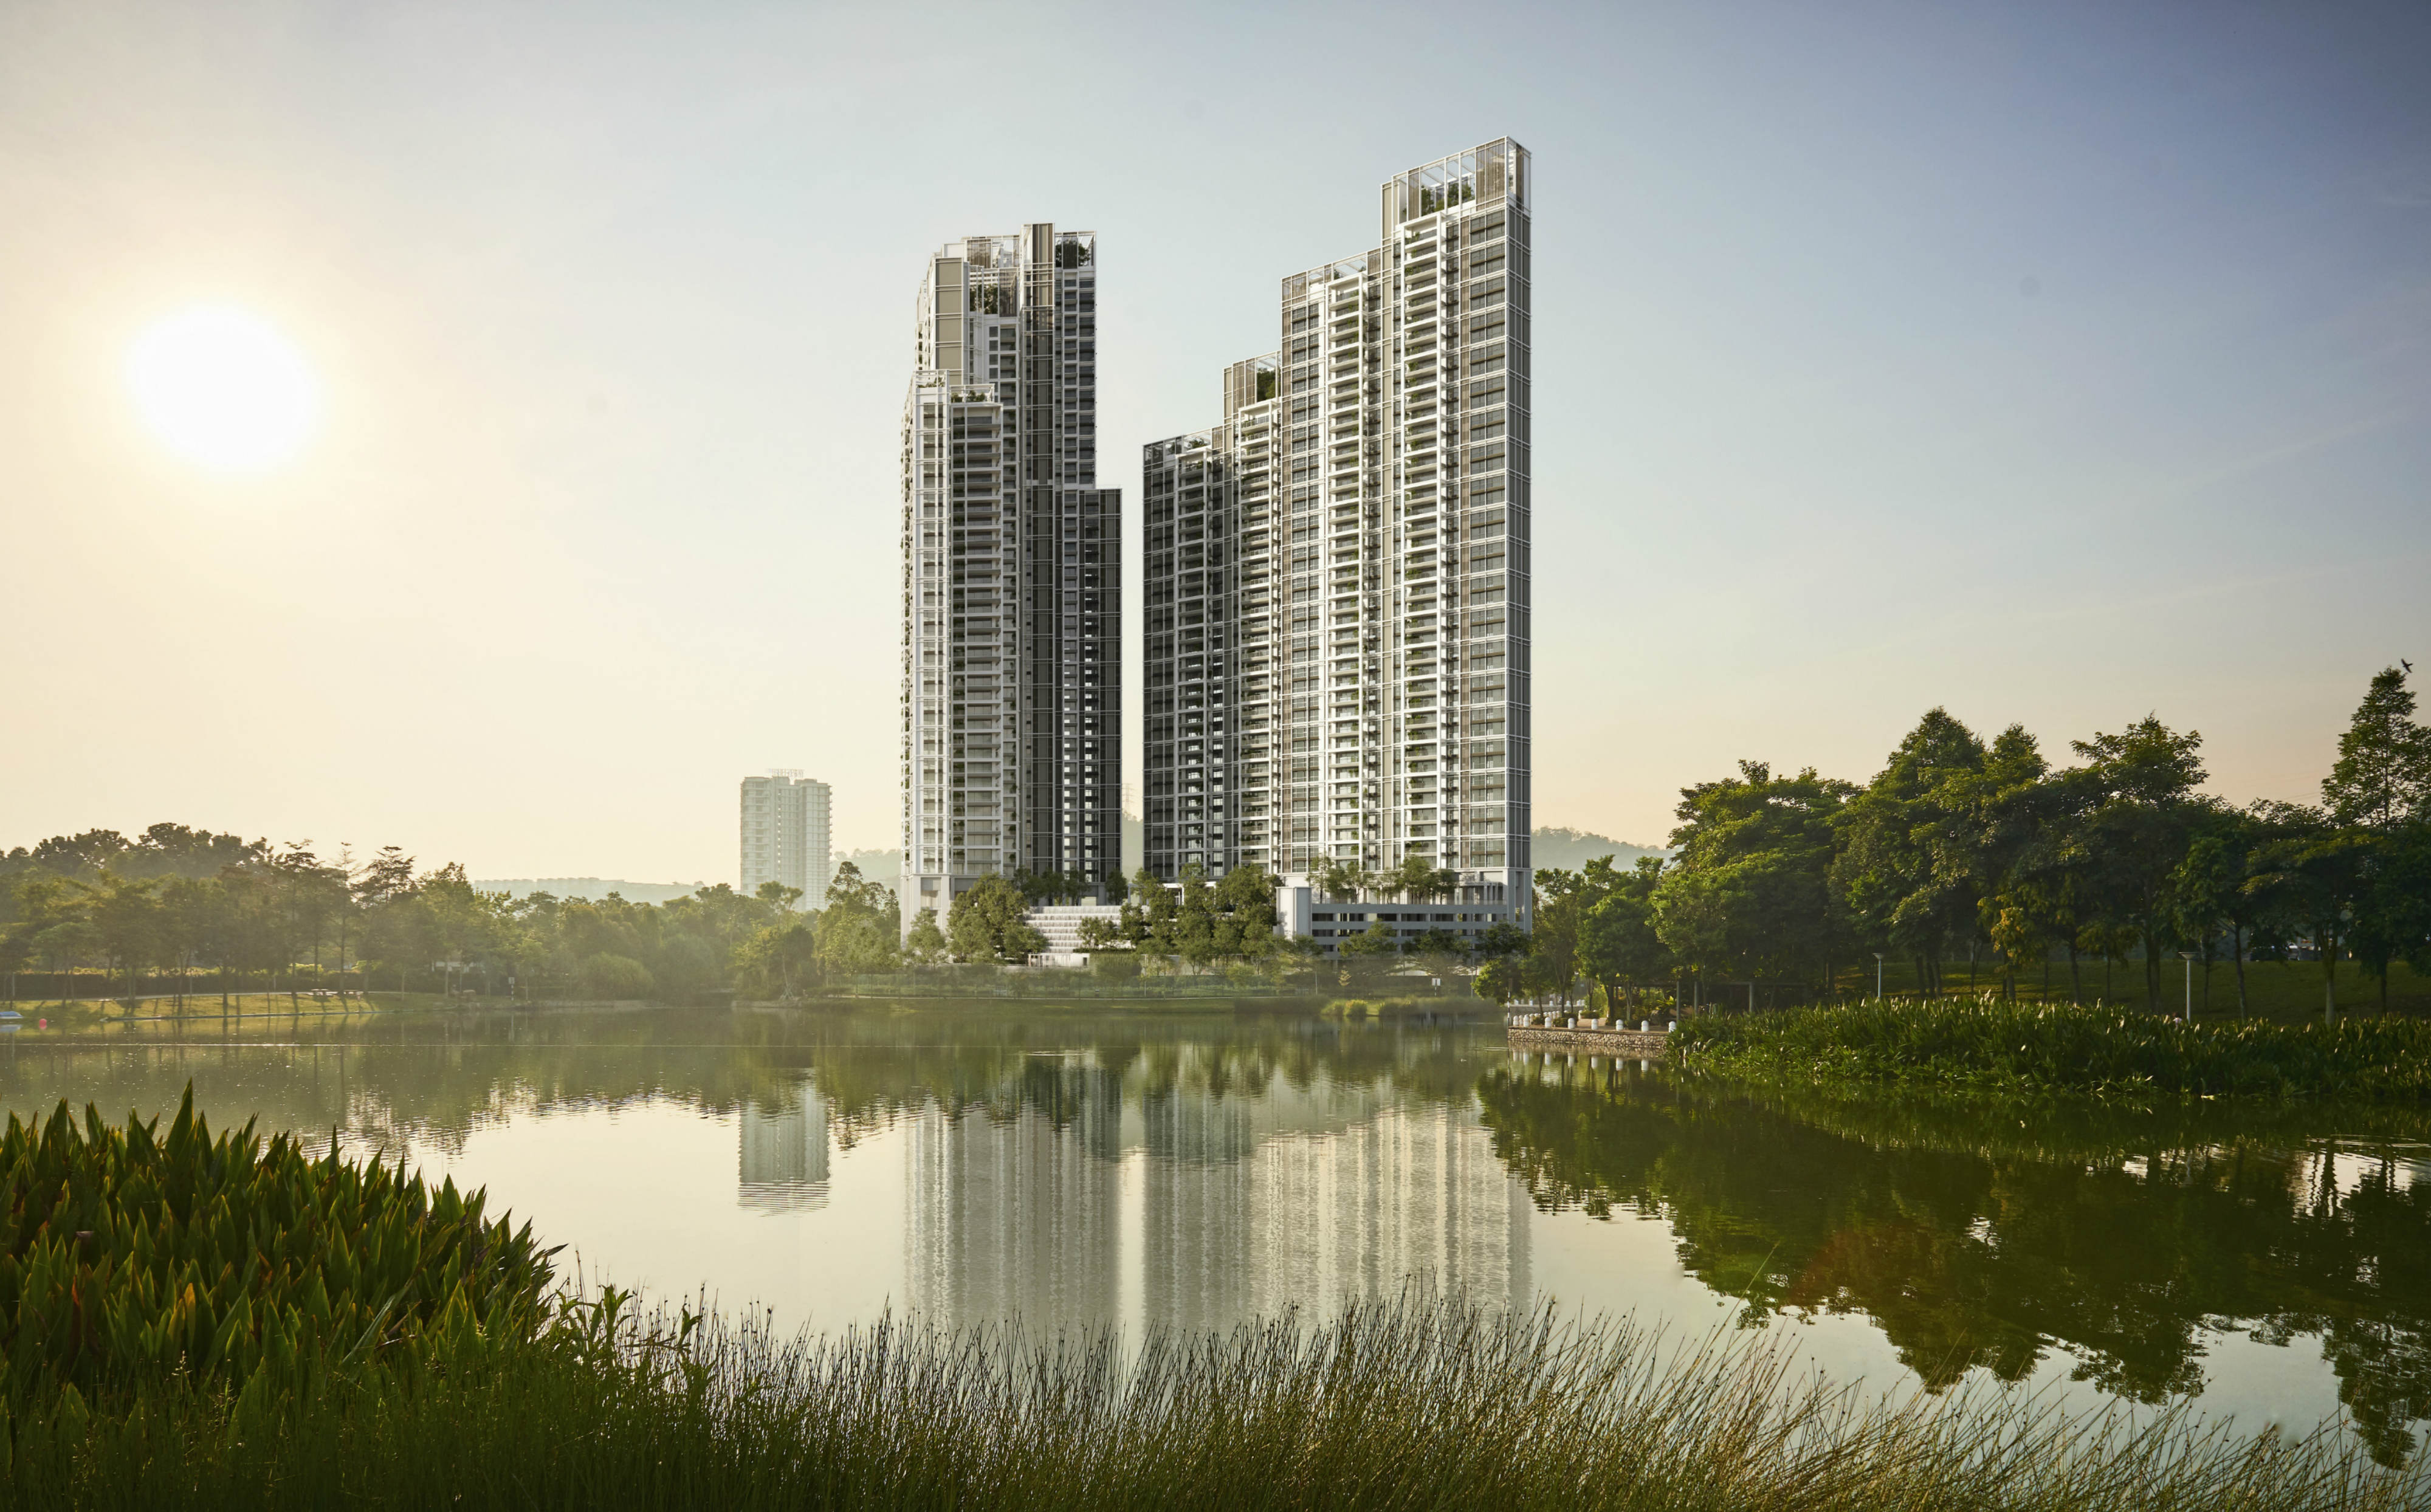 CAPITALAND PARK REGENT - Artist's impressions of Park Regent, a 505-unit freehold residential development located in Malaysia's highly regarded Desa ParkCity township